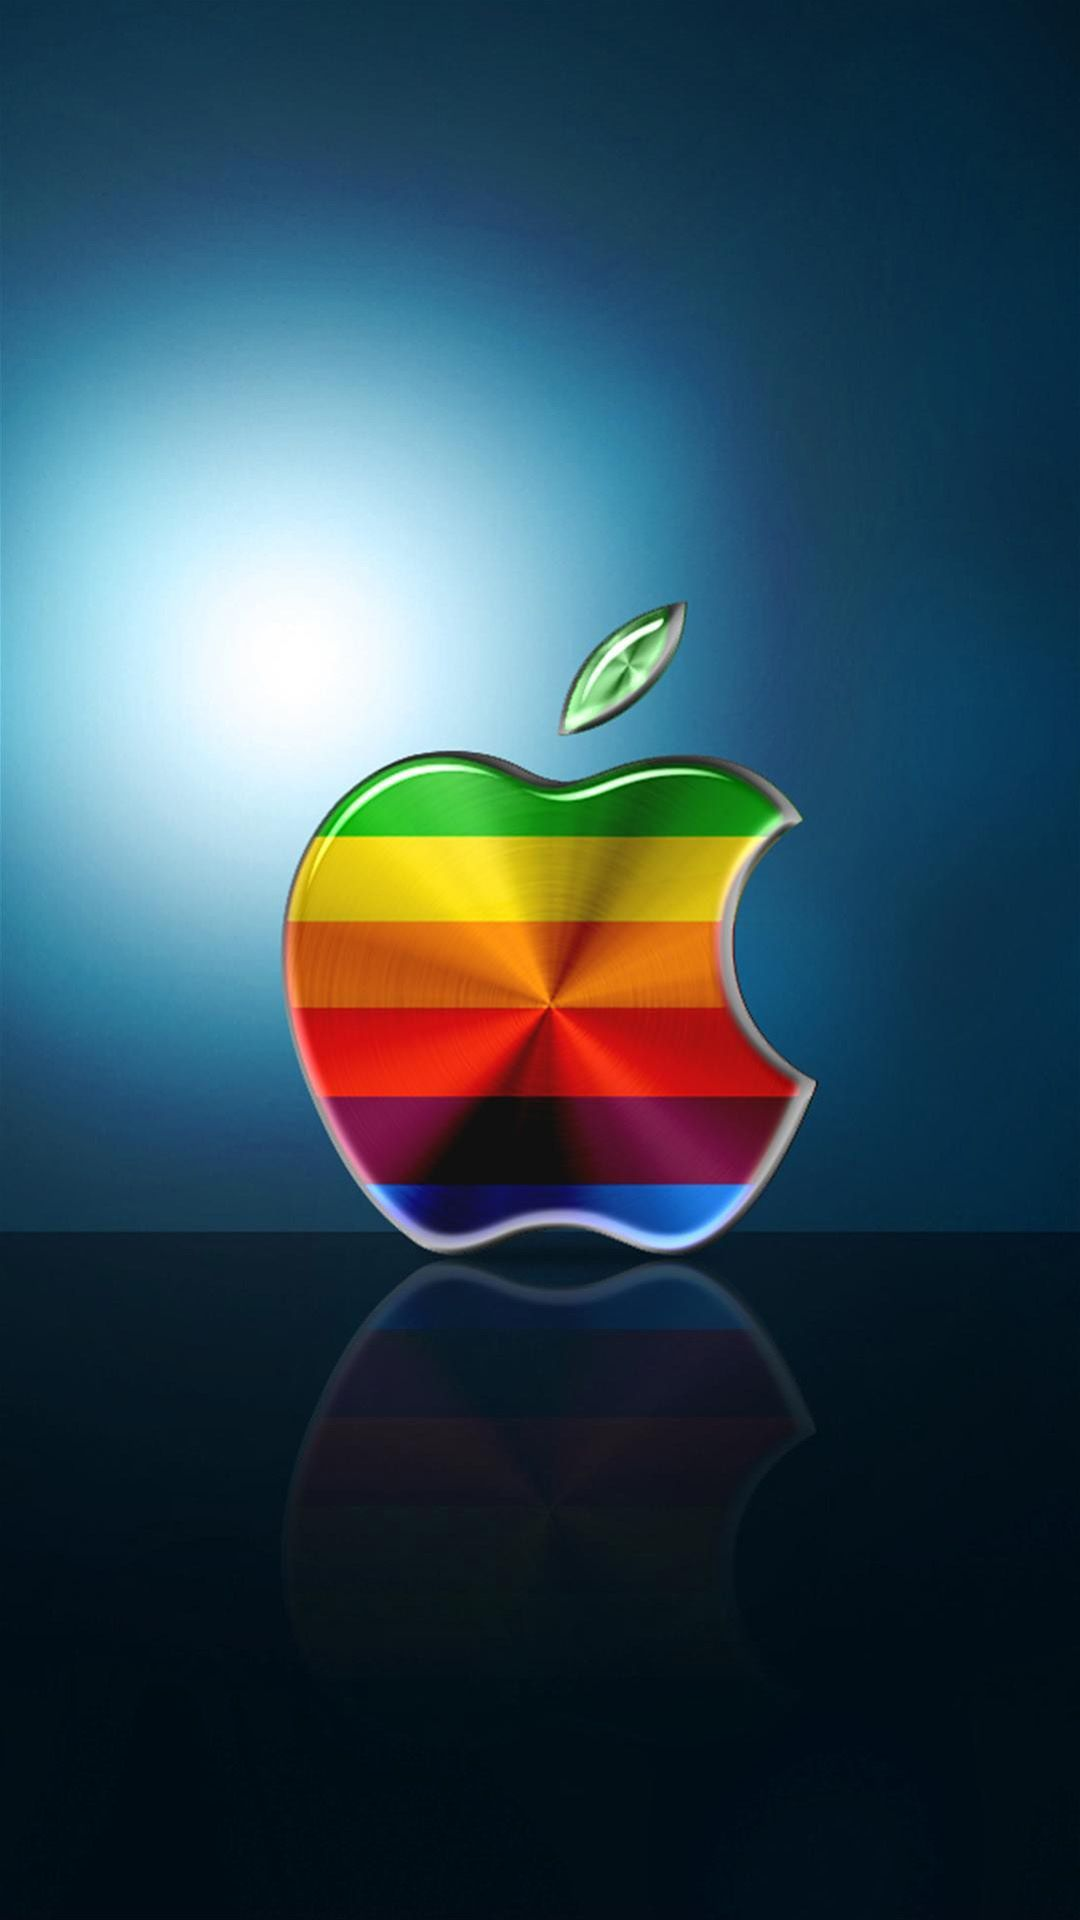 3D Apple iPhone Wallpapers - Top Free 3D Apple iPhone